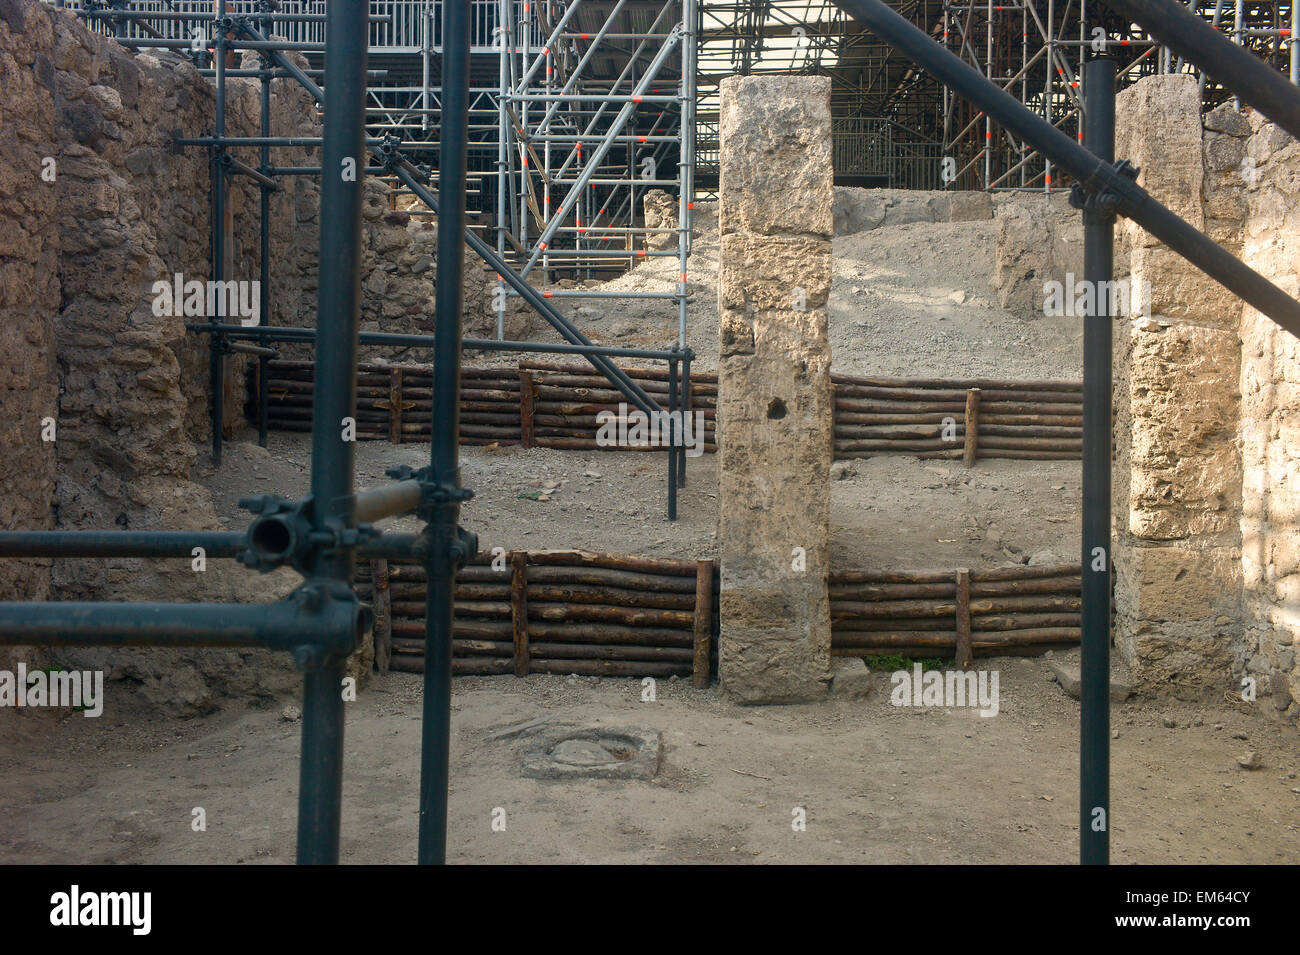 Pompeii, Italy. Scaffolding and props supporting buildings waiting to be excavated or restored - Stock Image